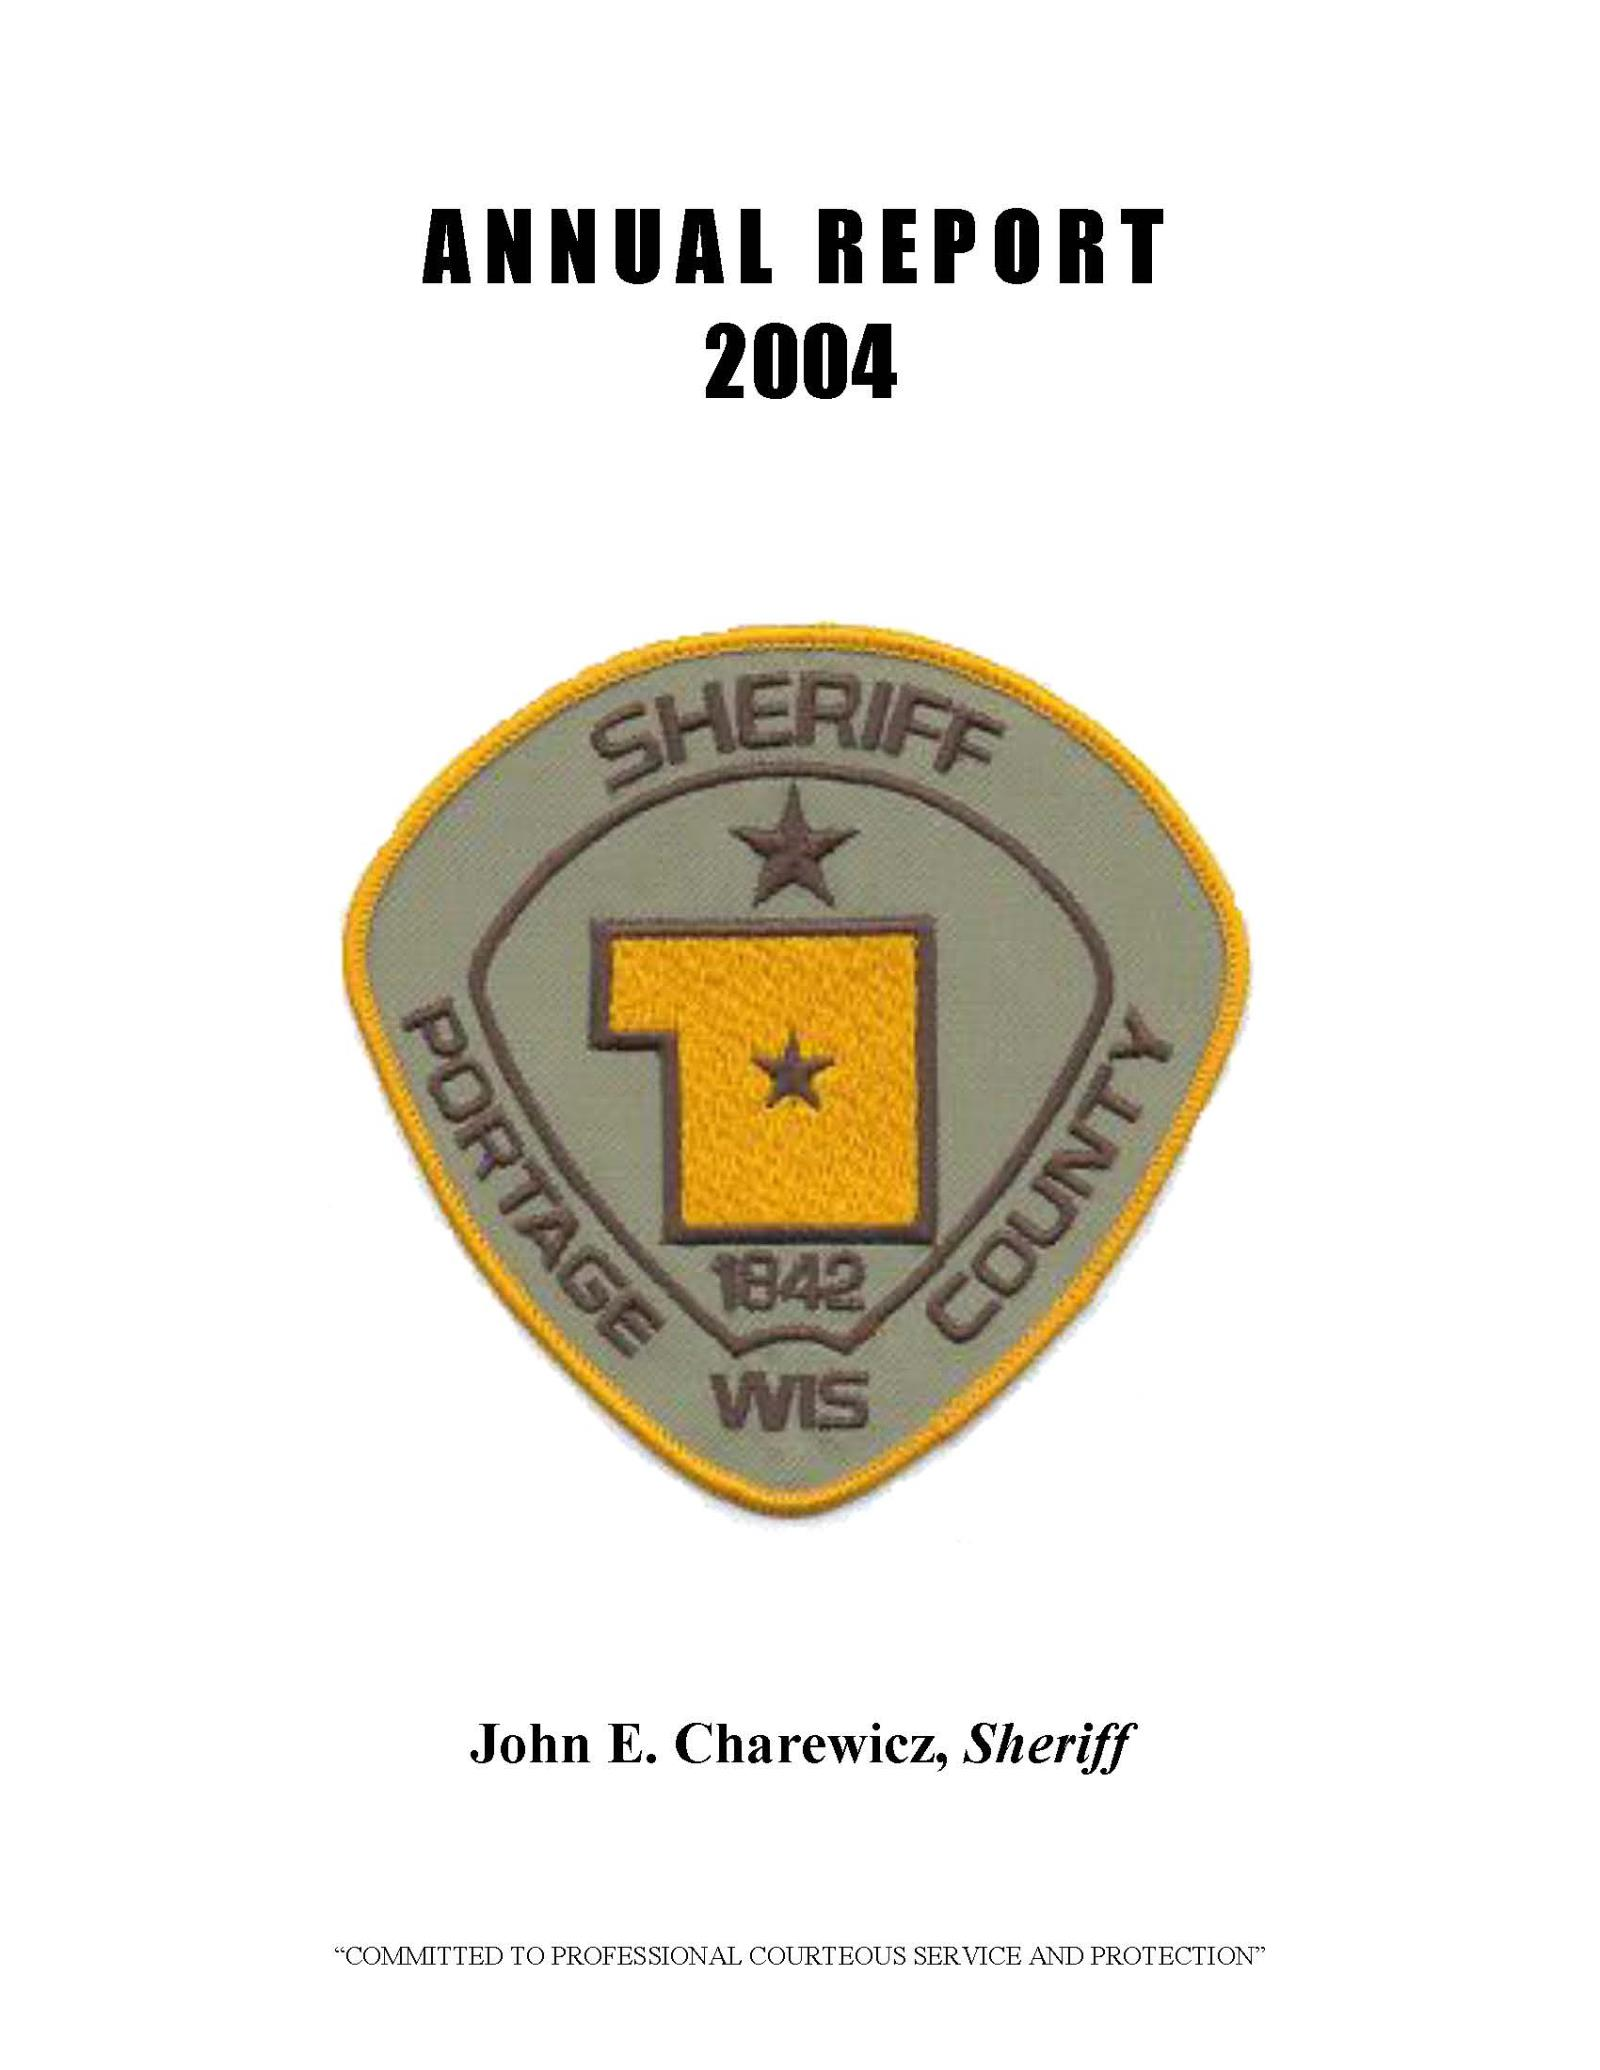 Annual Report 2004 Cover